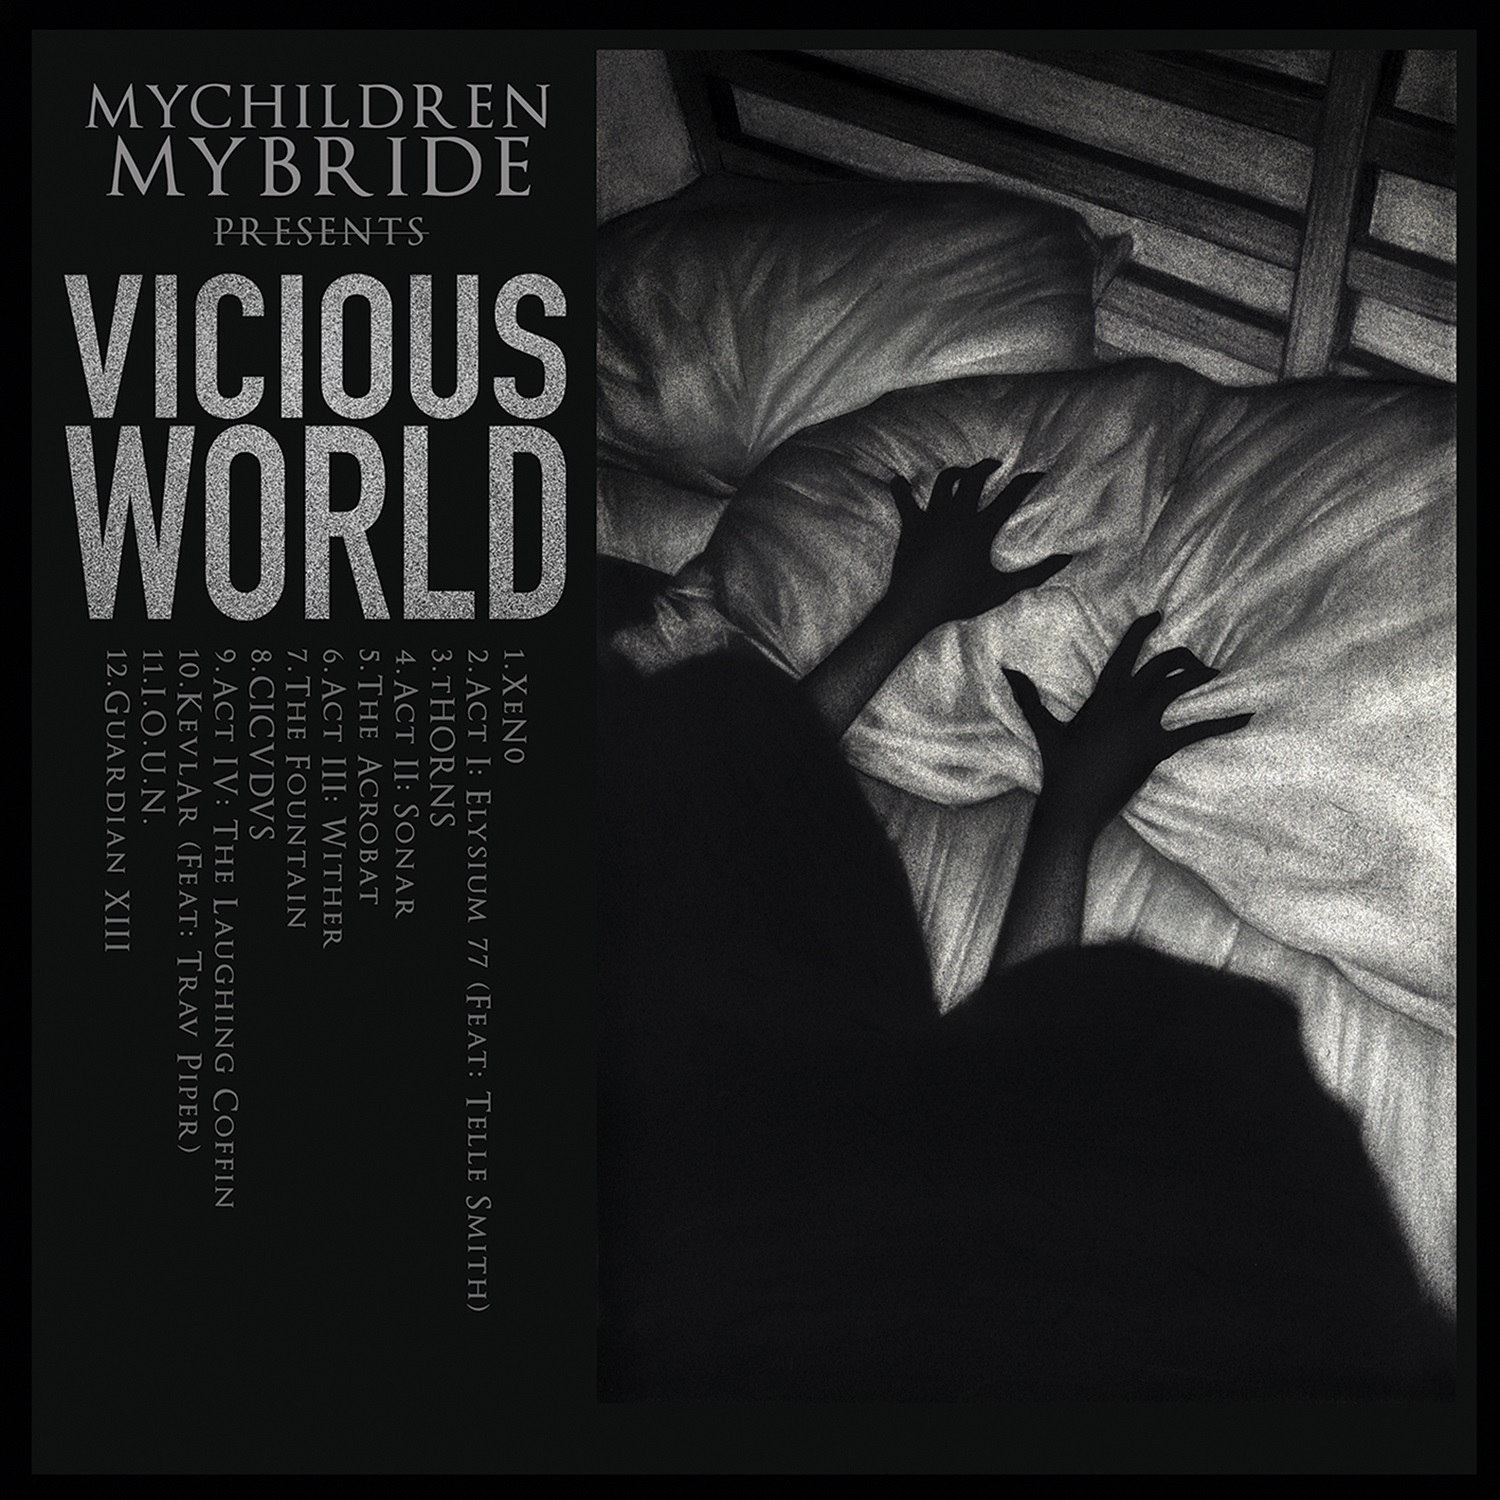 MCMB_Vicious World_1500.jpg